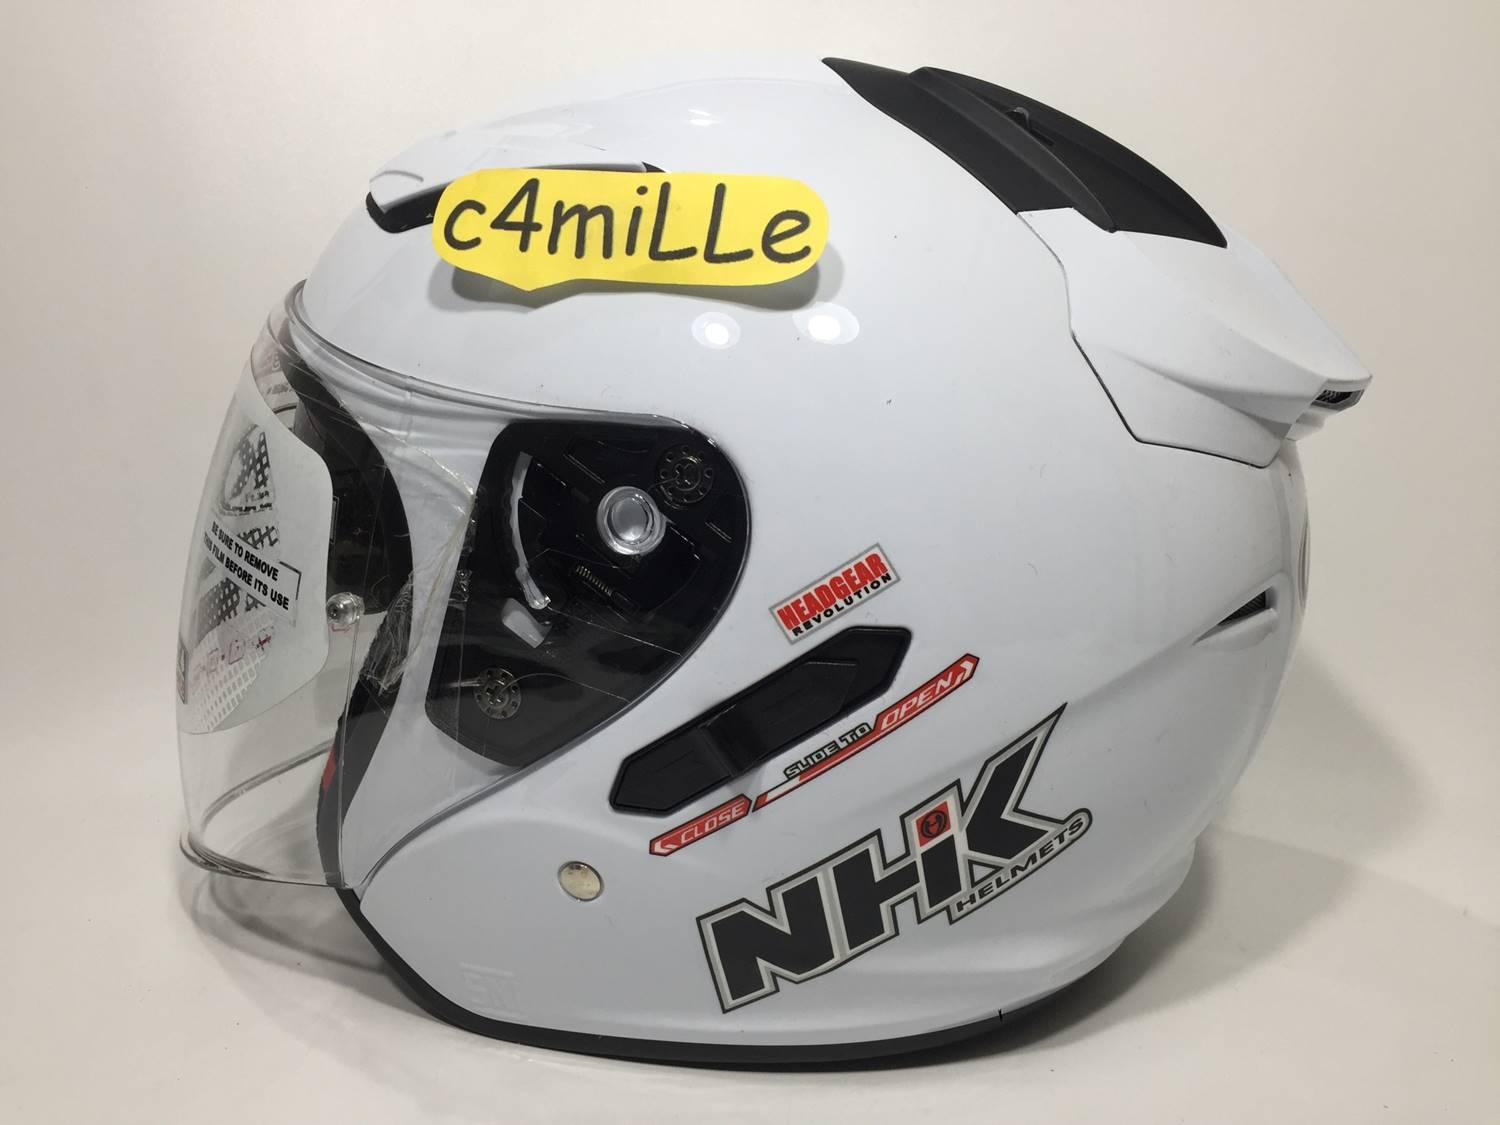 Fitur Helm Nhk Terminator Road Yellow Fluo Double Visor Full Face Gp1000 Xvision R1 Solid White Half